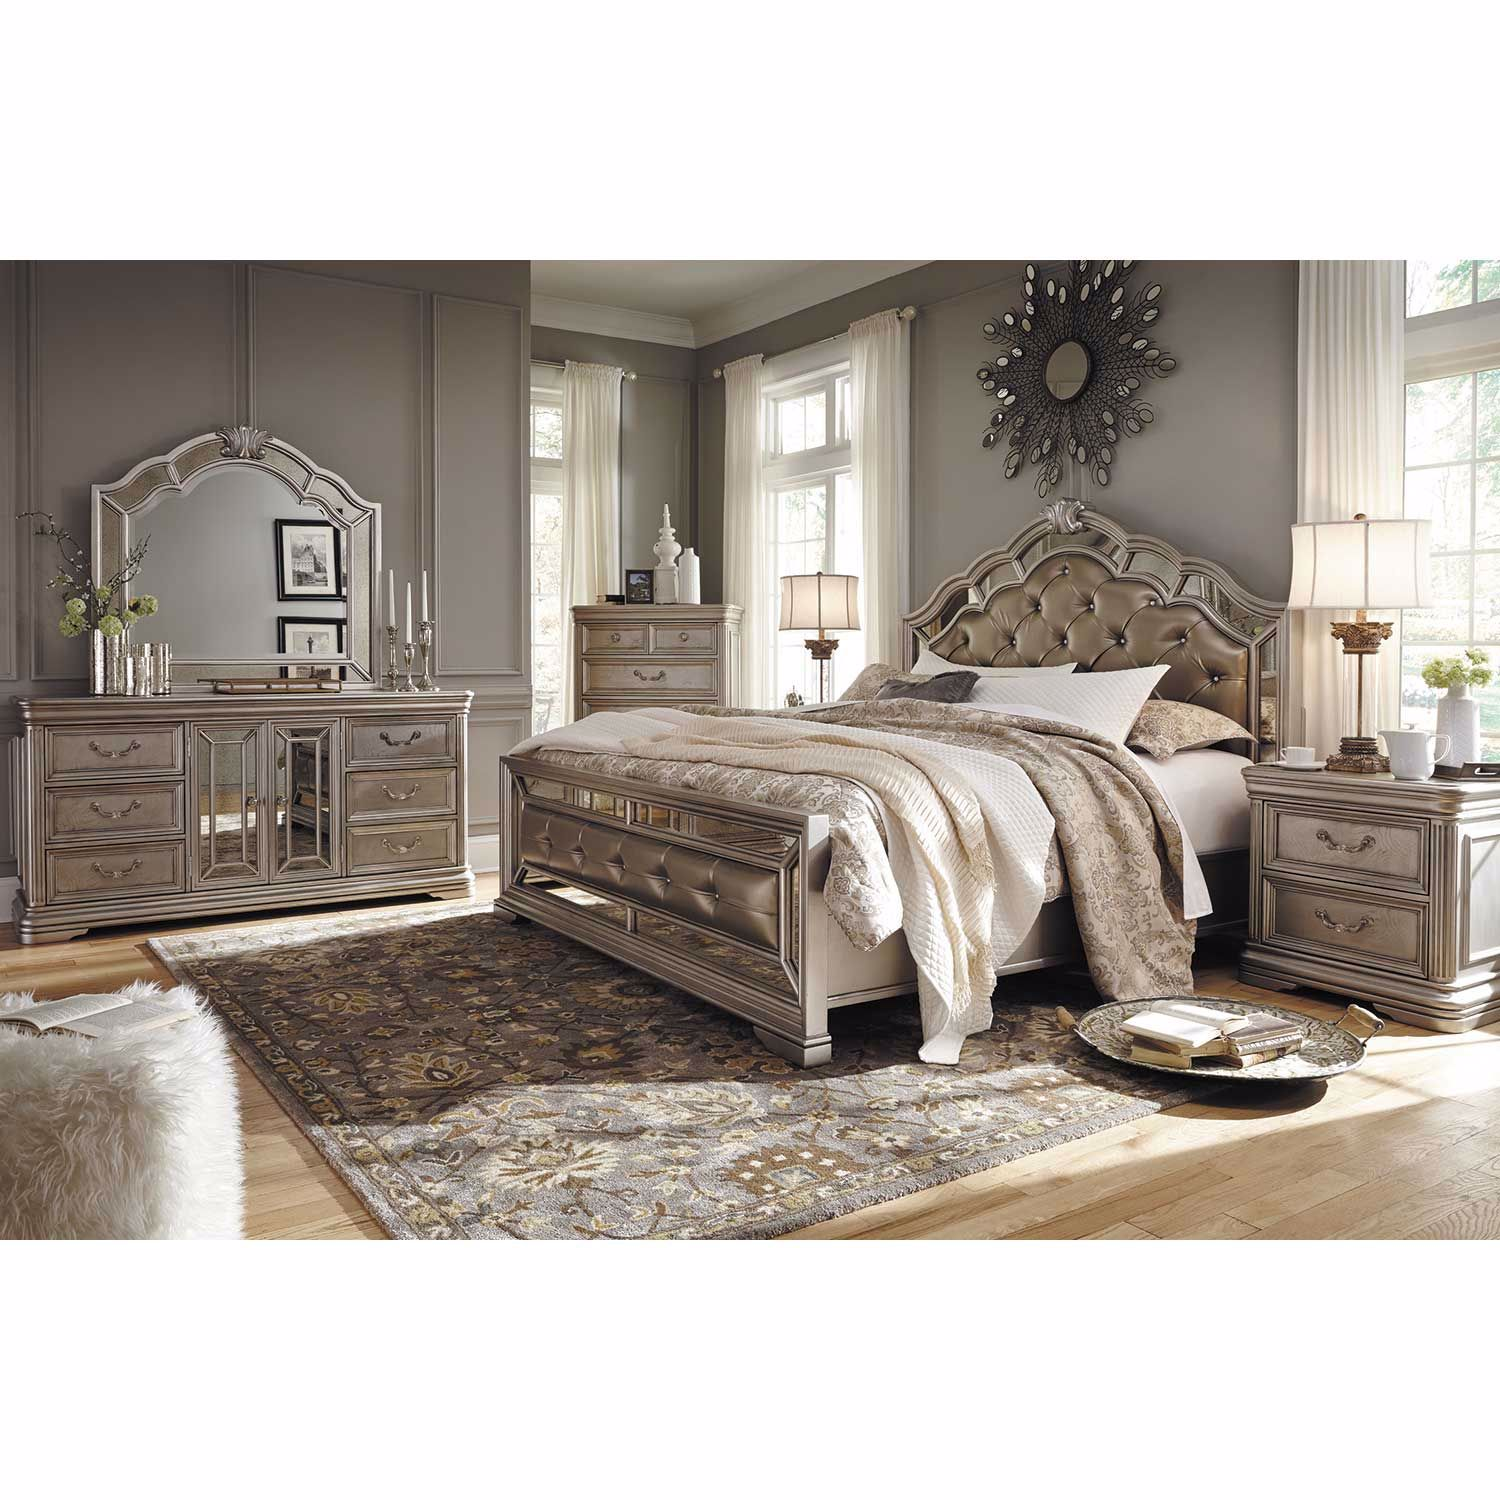 Picture of Birlanny King Panel Bed